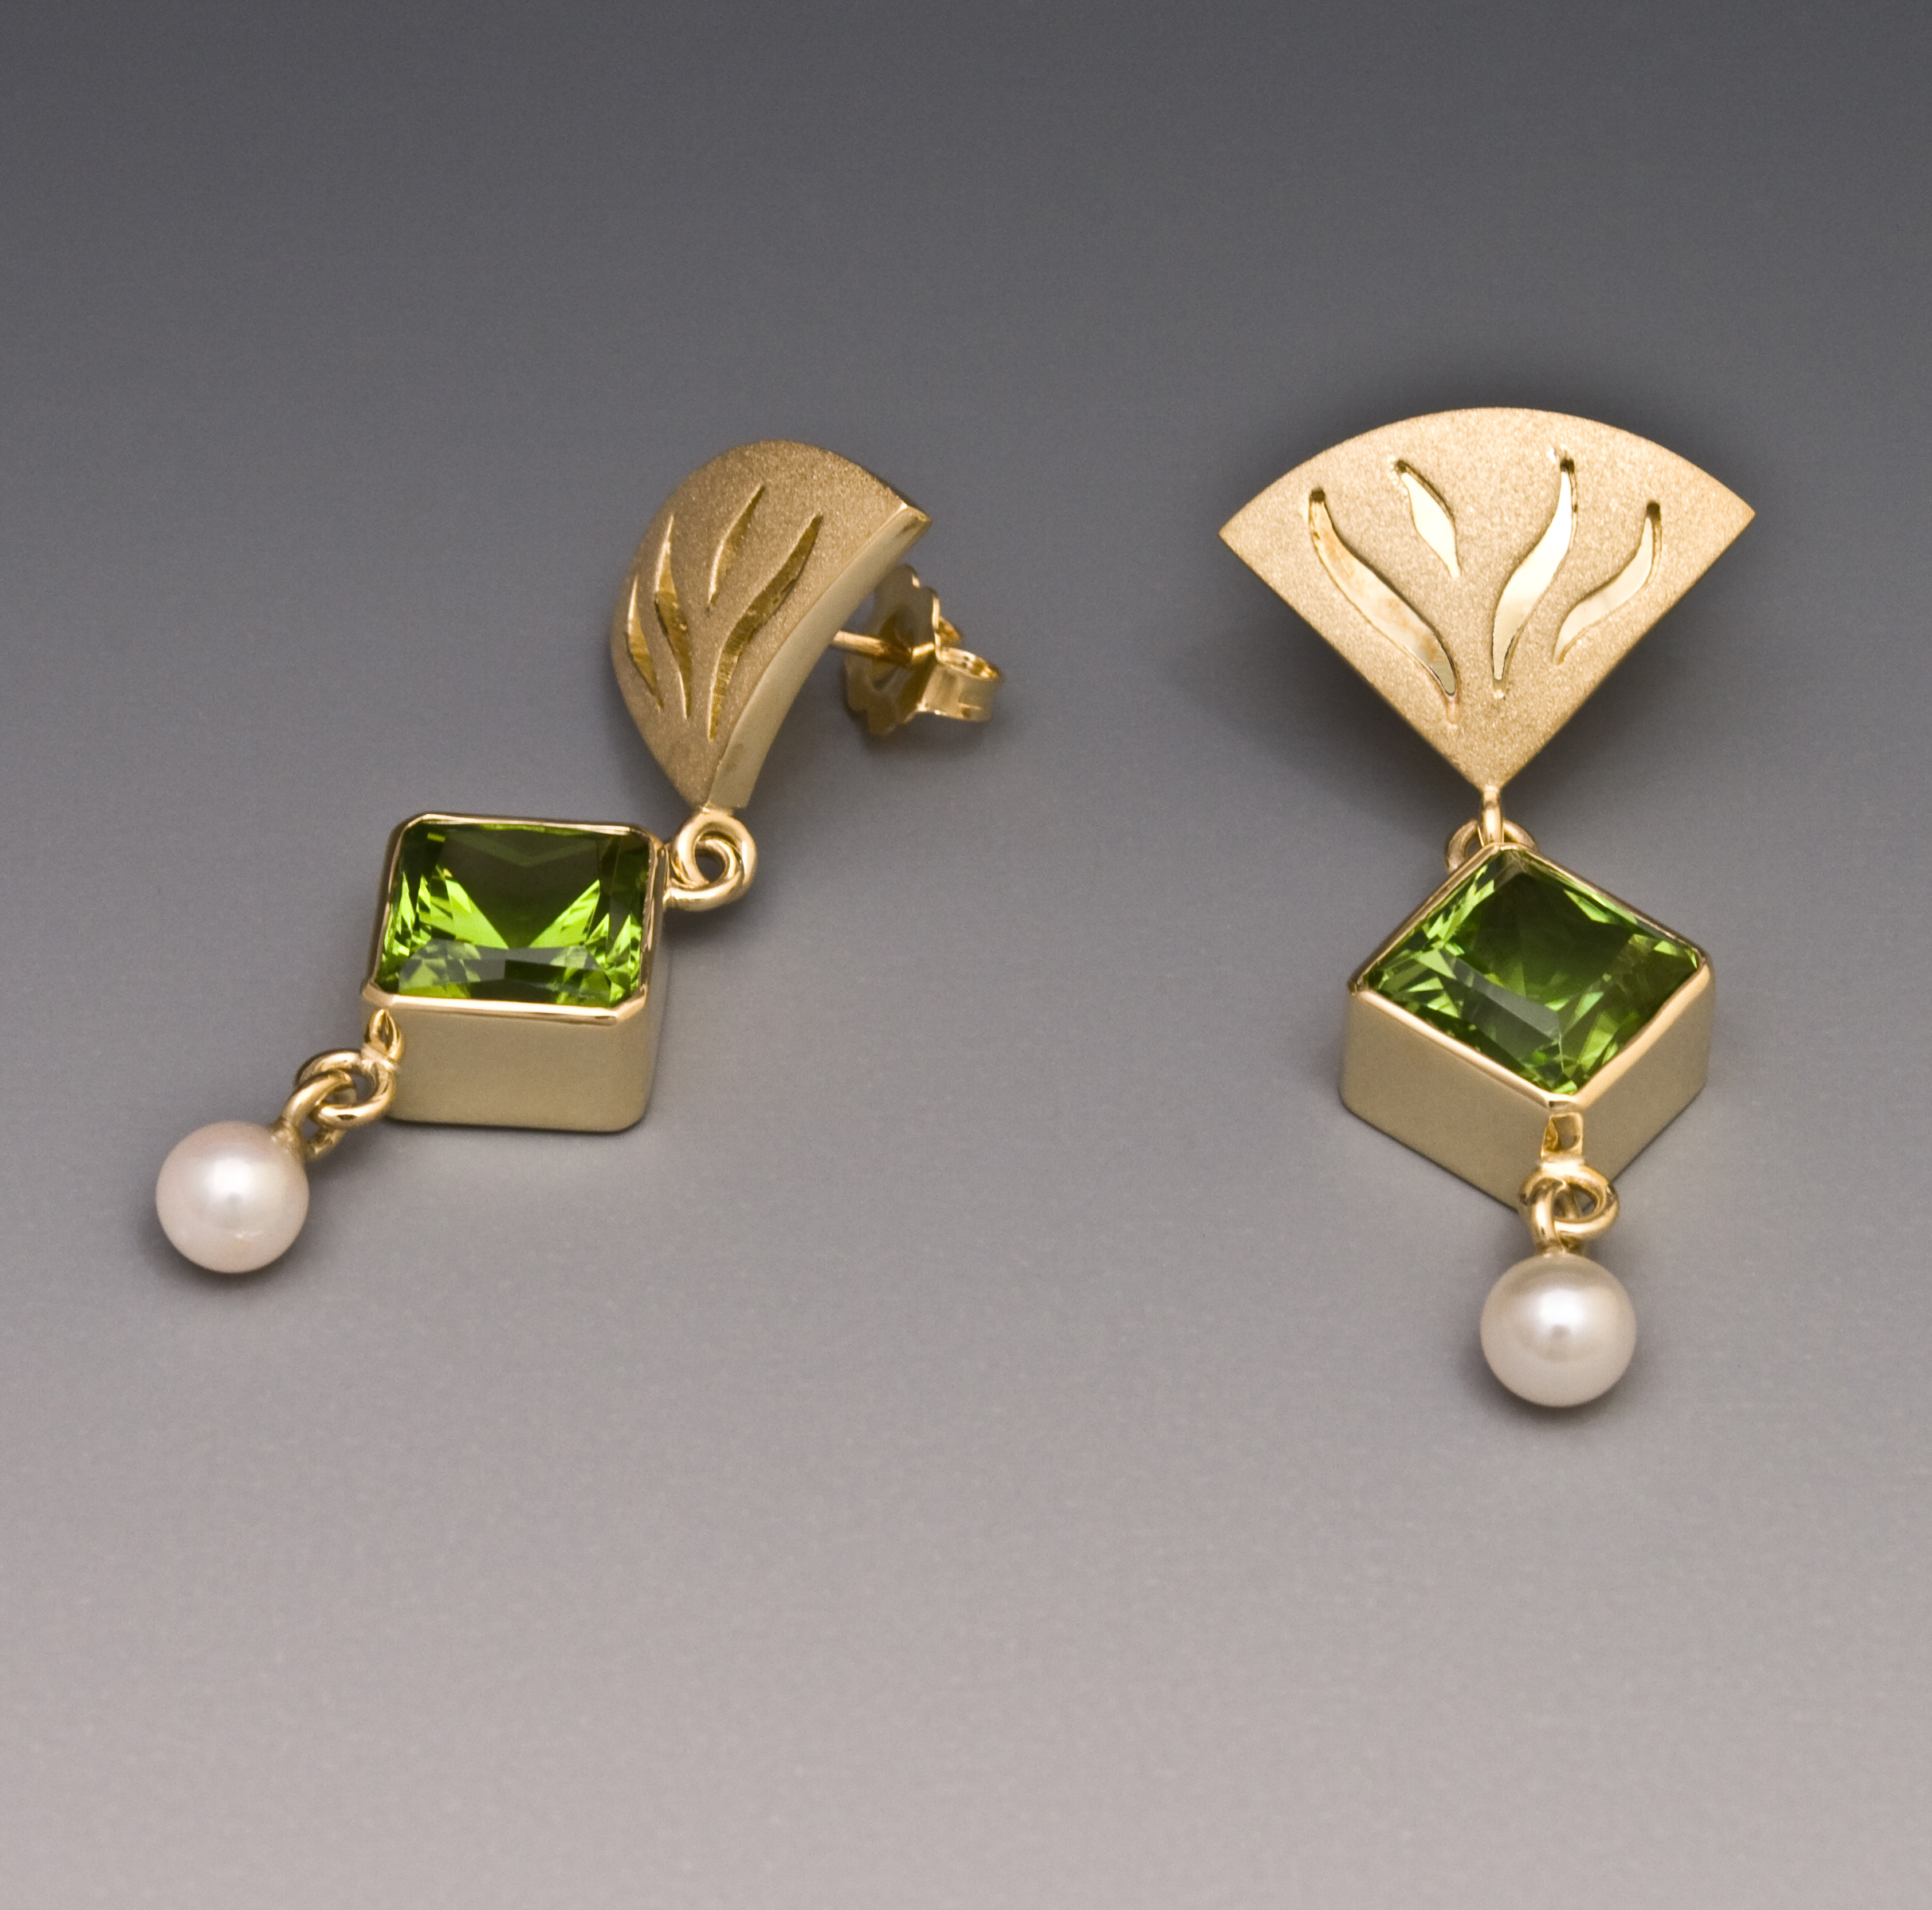 eden subsampling bulgari earrings sassi product mediterranean and upscale false peridot crop amethyst scale shop